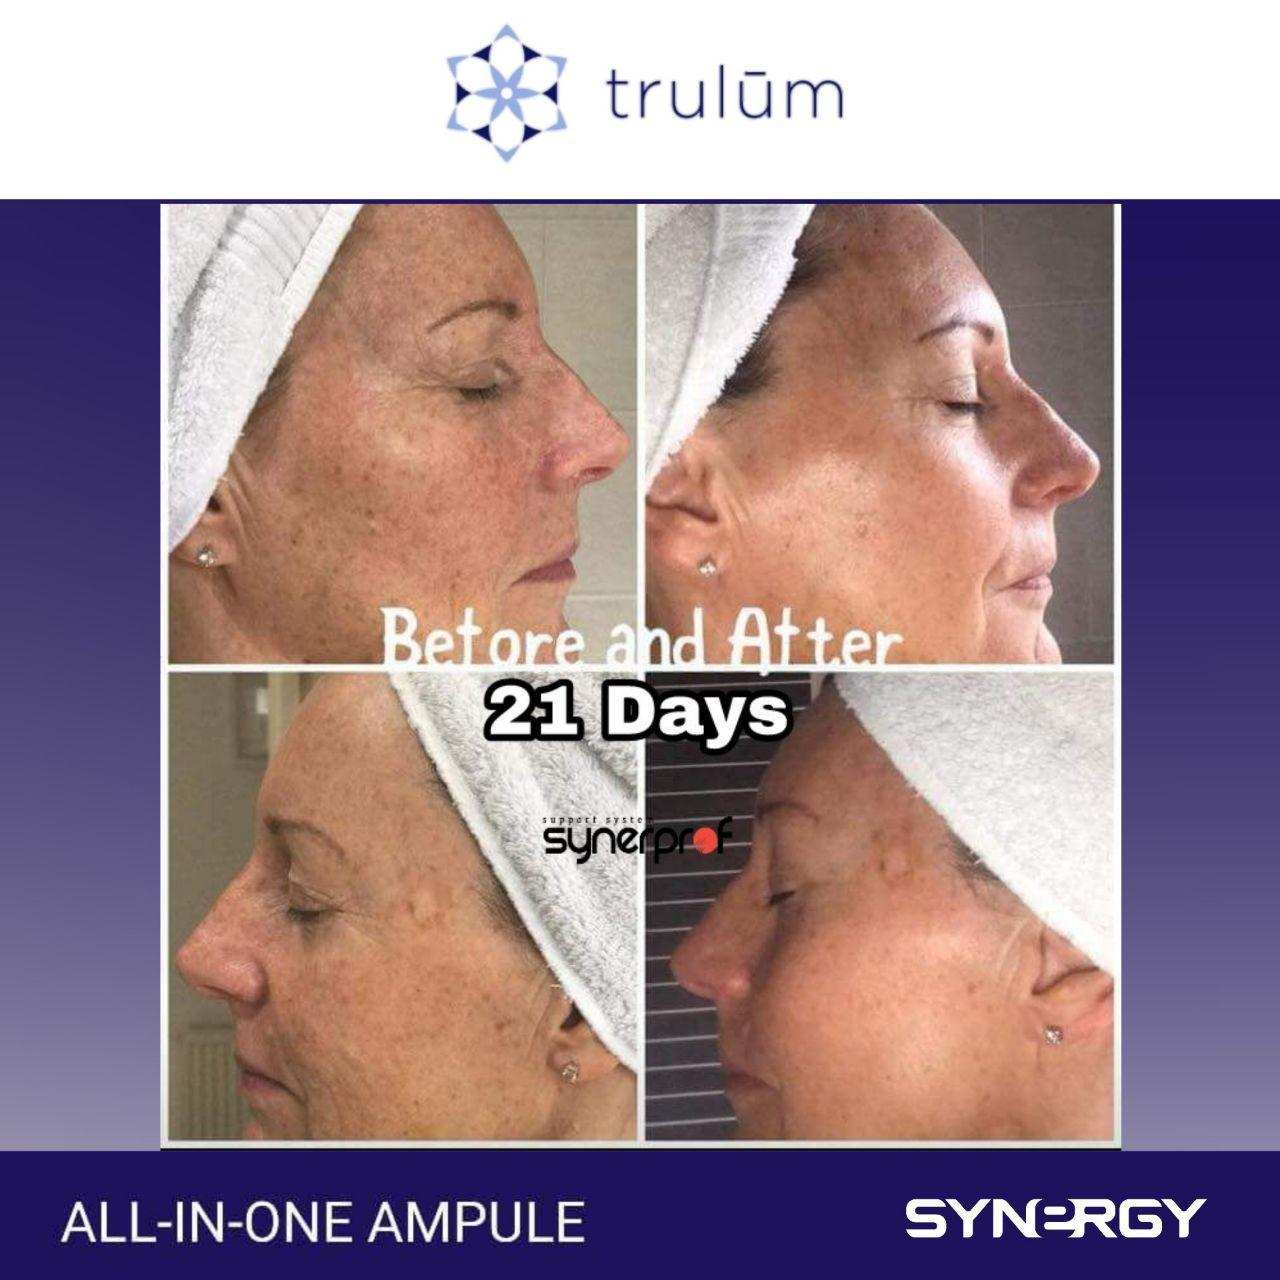 Jual Trulum All In One Ampoule Di Darul Imarah WA: 08112338376